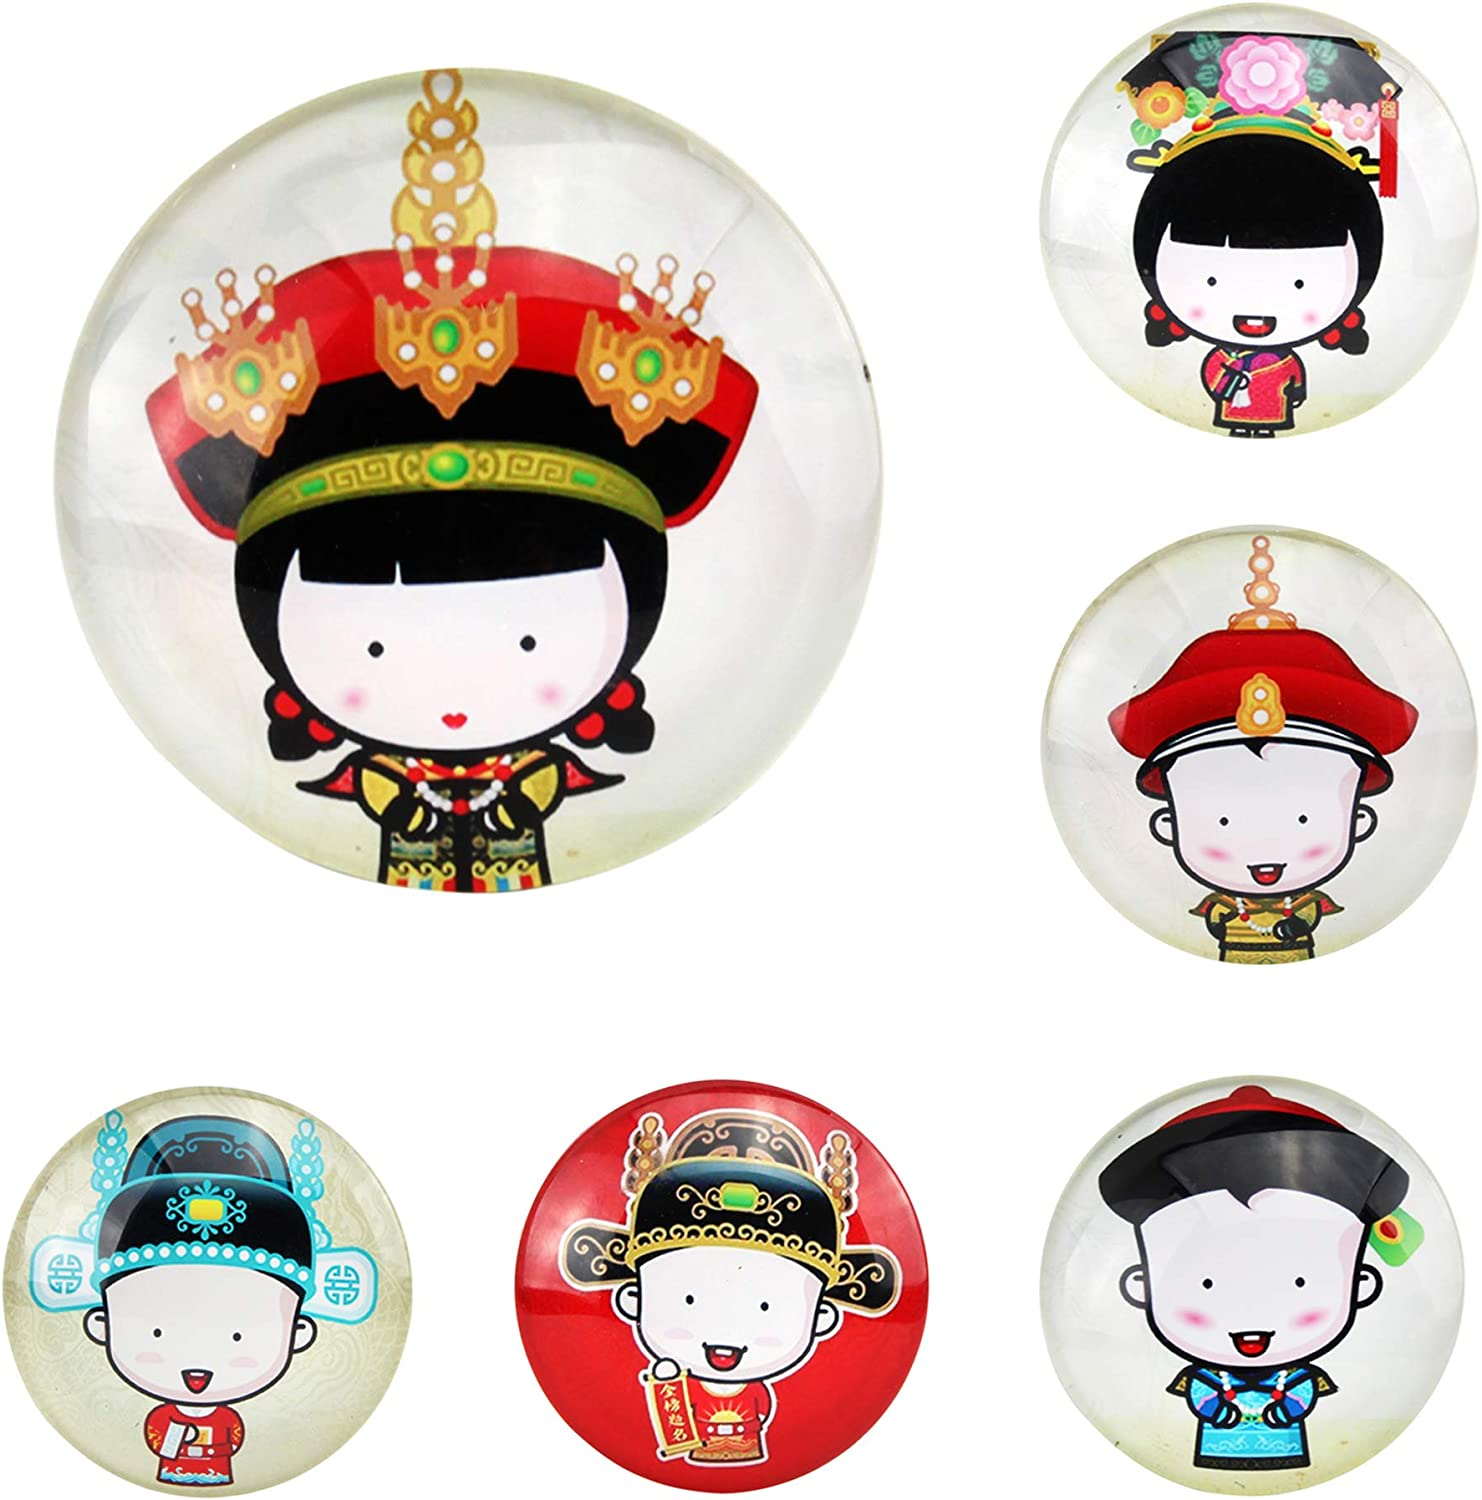 Set of 6 Palace Museum Glass Refrigerator Magnets Fridge Magnet Peking Opera Royal Family Cartoon Characters Set Resin Colorful Decorative Crystal Fridge Magnets Travel Gift about Chinese Culture